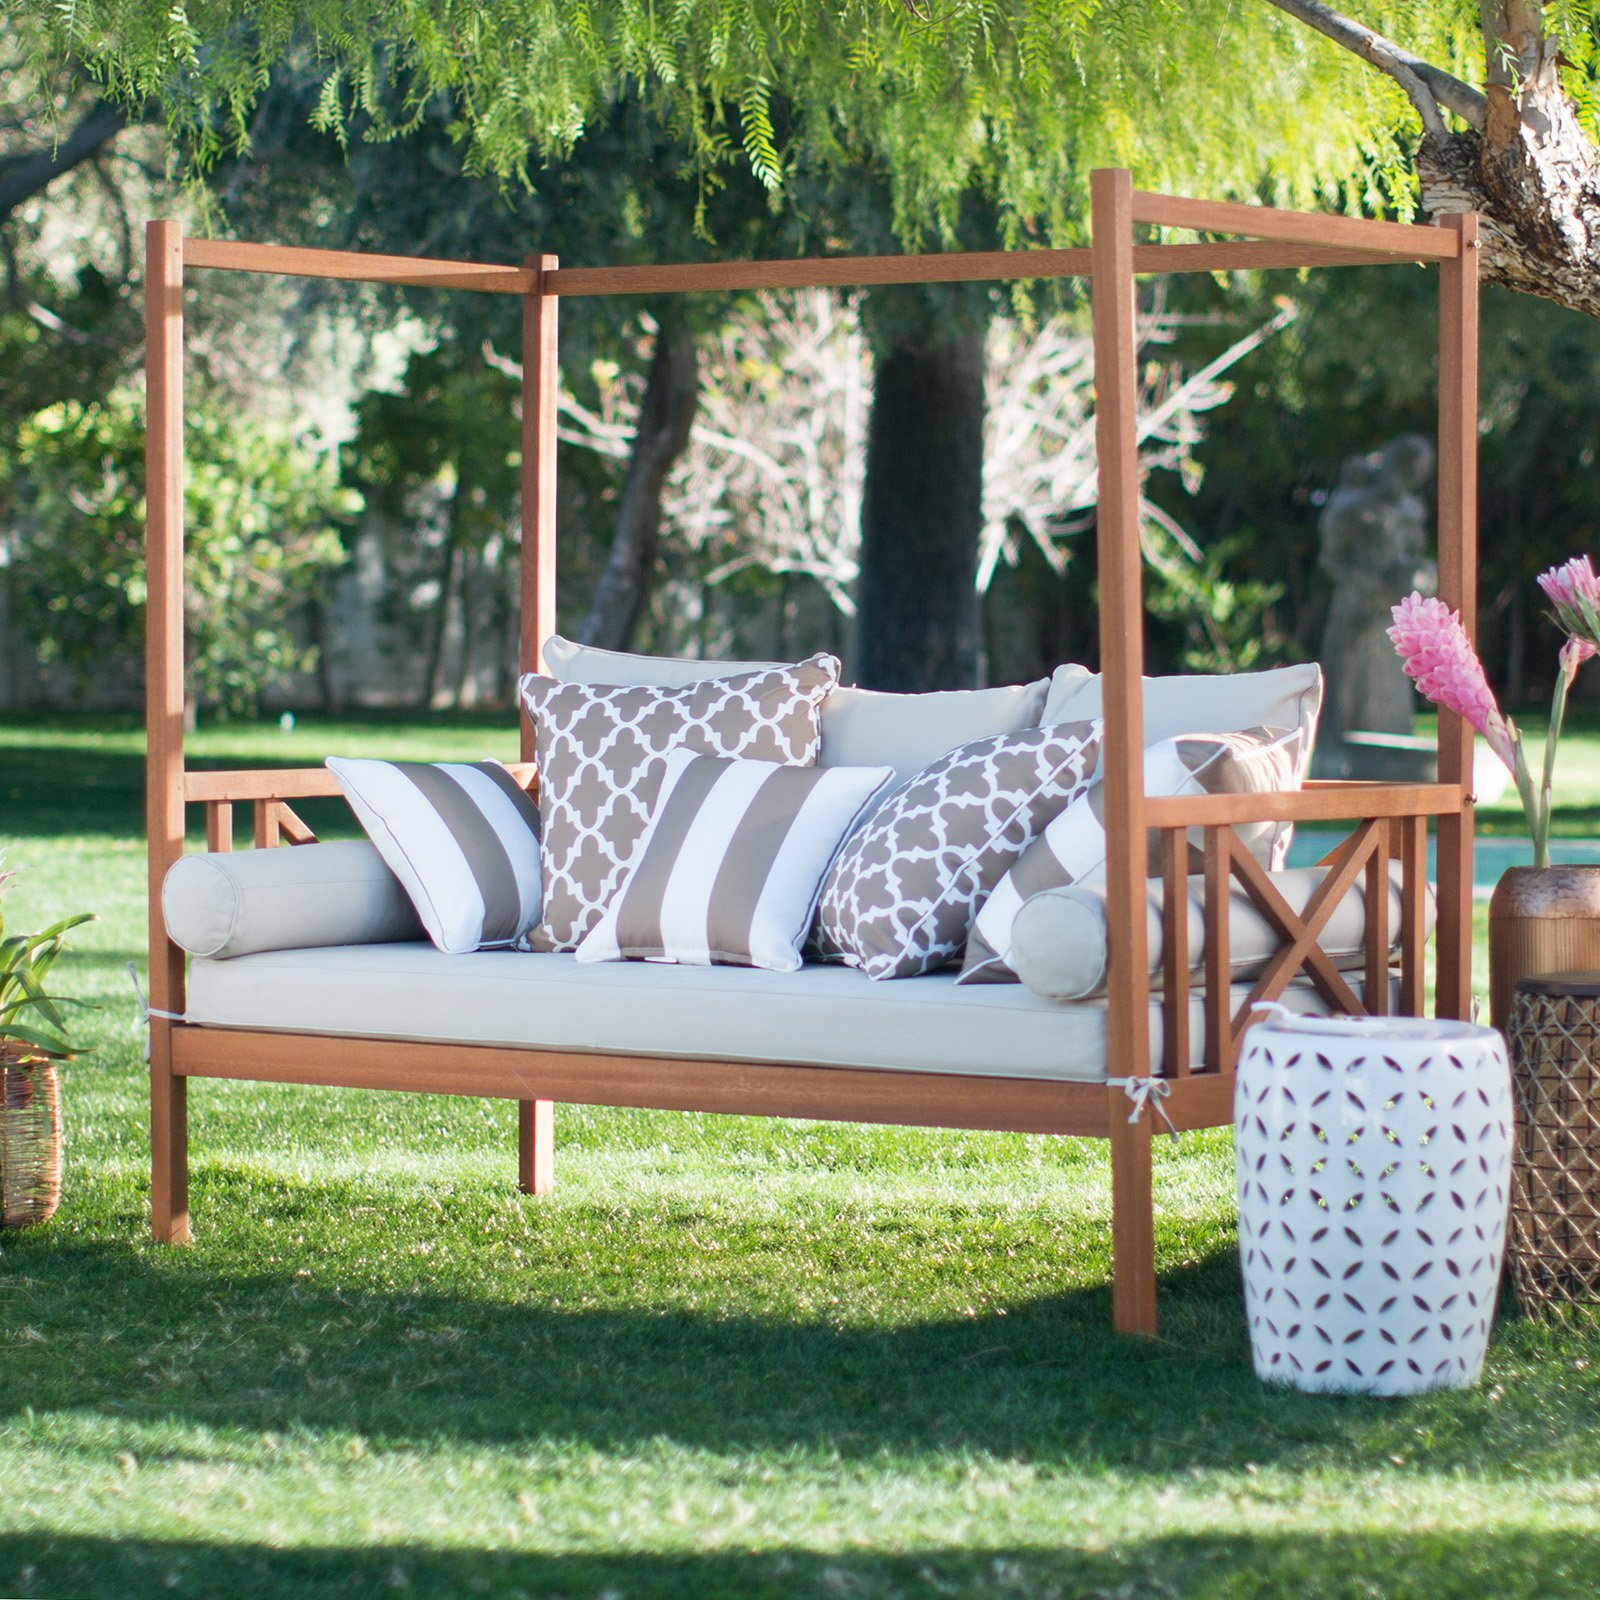 Belham Living Brighton Outdoor Daybed - Walmart.com on Belham Living Brighton Outdoor Daybed id=75939